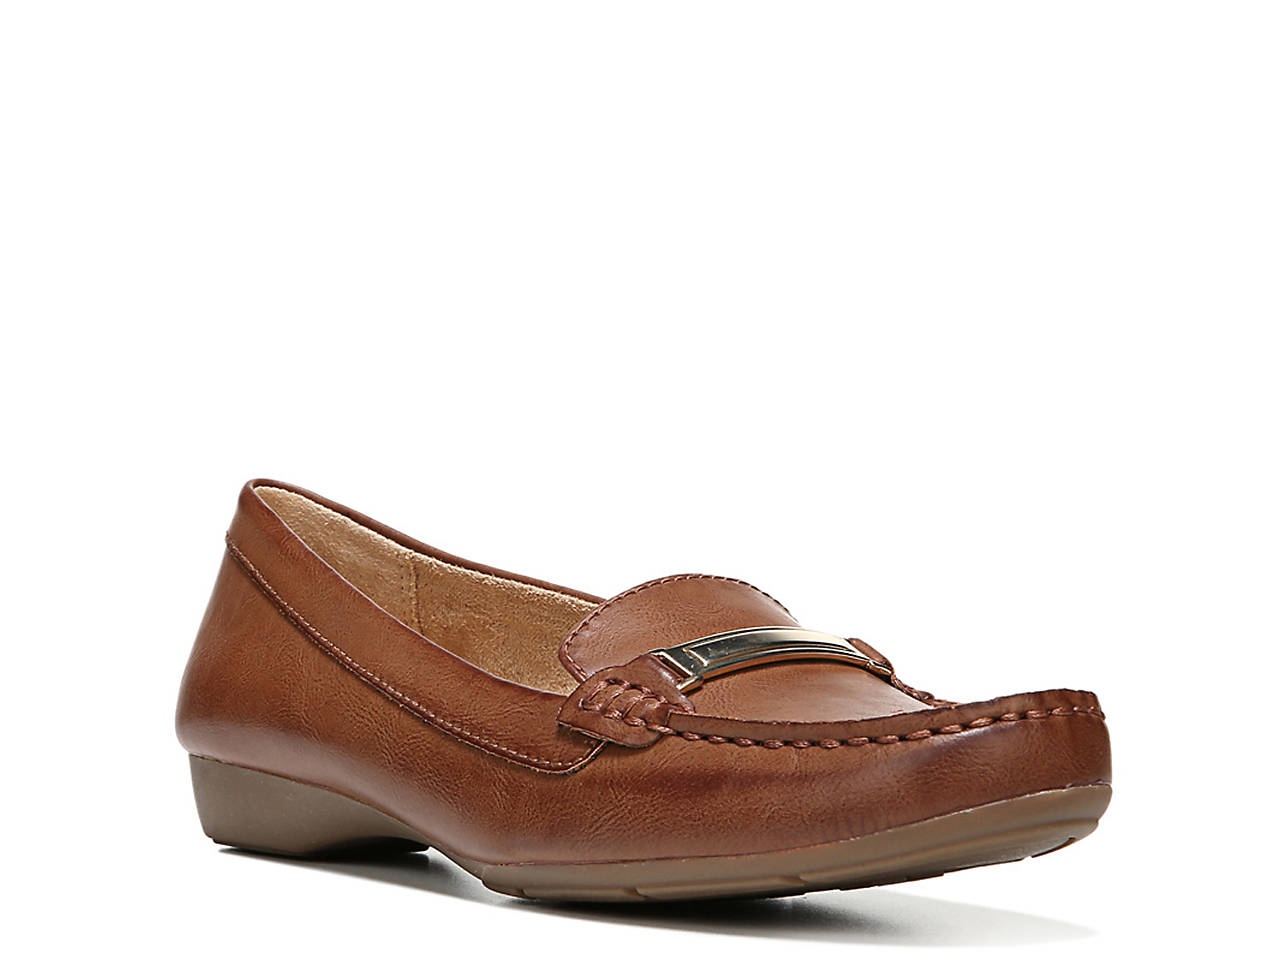 8bb38569a821 Naturalizer Gadget Loafer Women s Shoes